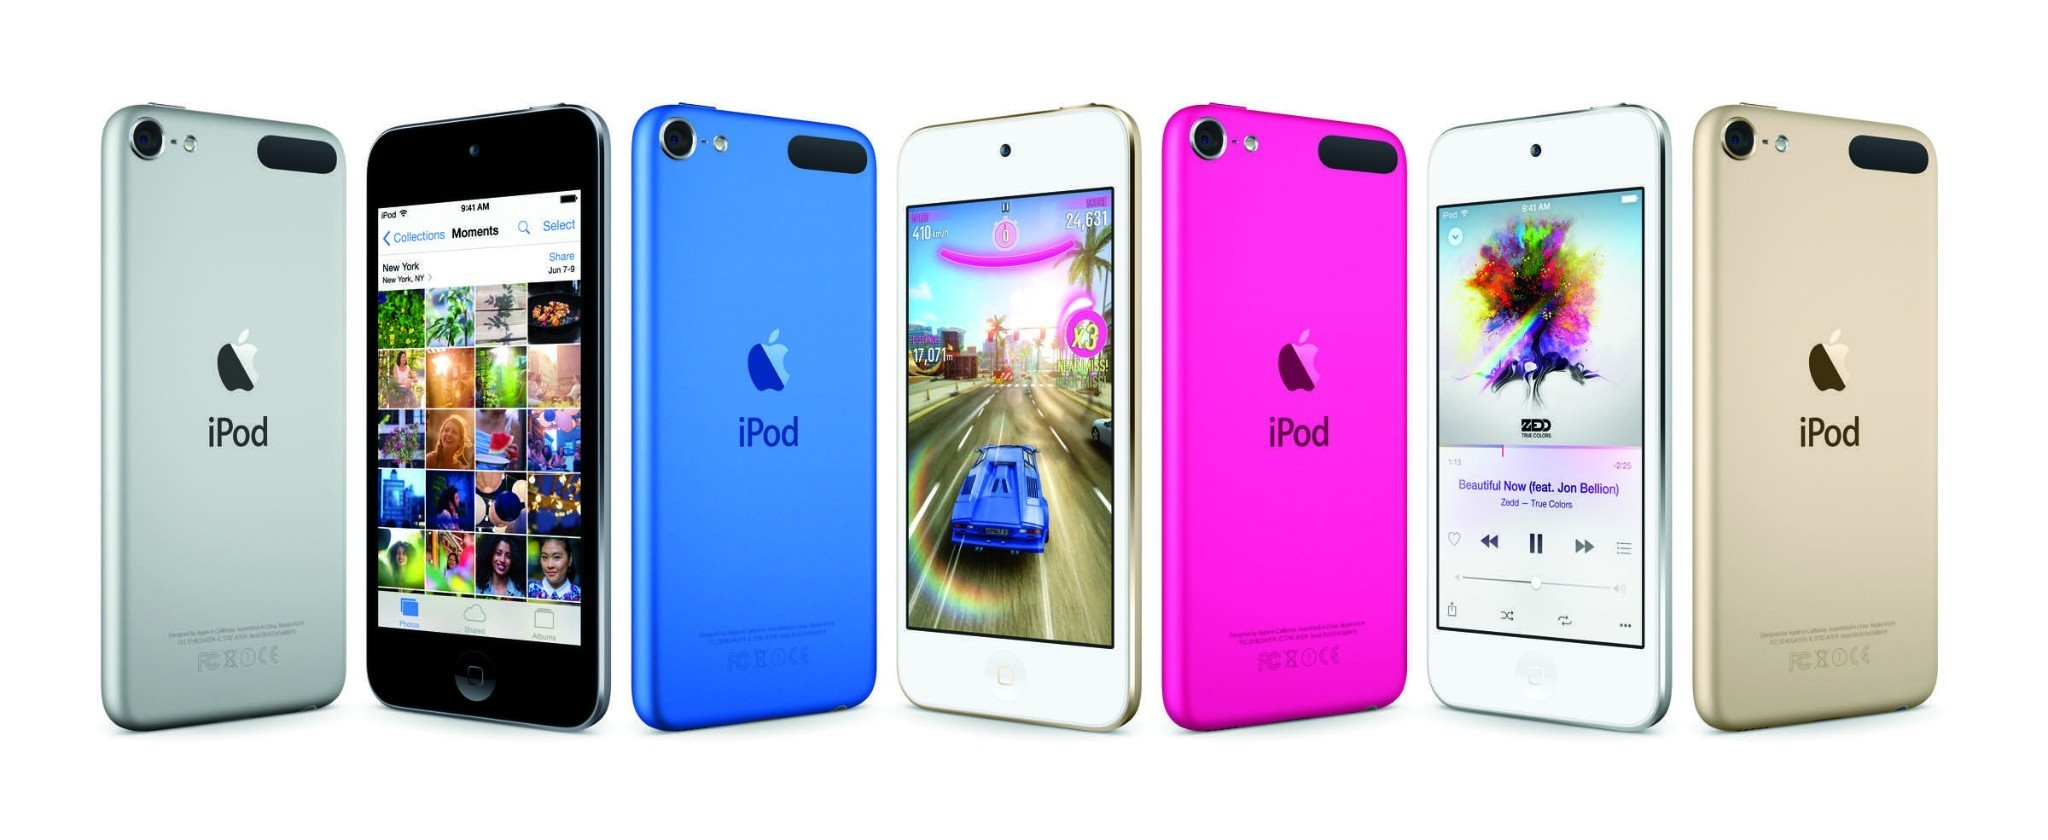 Apple releases new, faster, iPod touch with 8MP camera and 128 GB option, new Nano/Shuffle colors